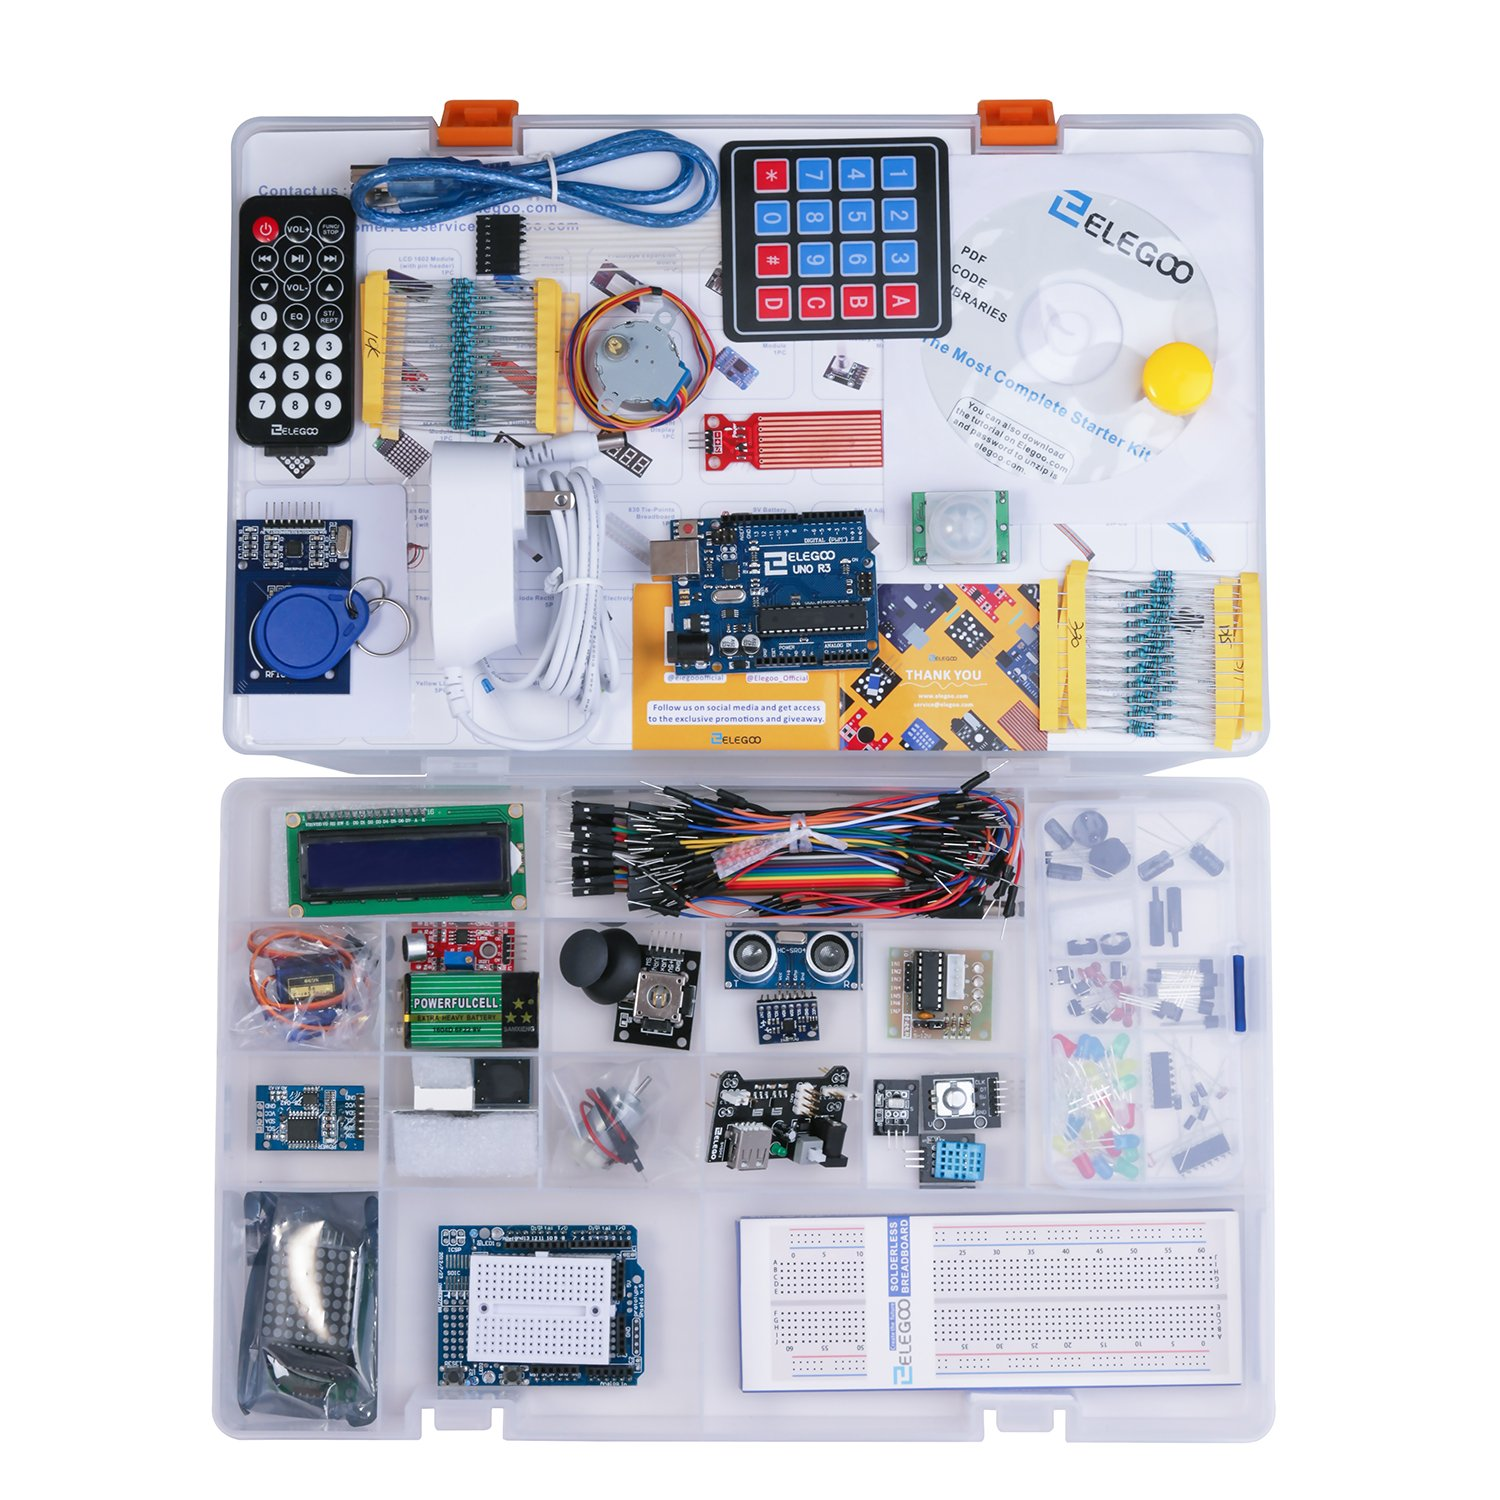 Elegoo El Kit 001 Uno R3 Project Complete Starter Electronic Watchdog Electronix With Tutorial For Arduino 63 Items Industrial Scientific